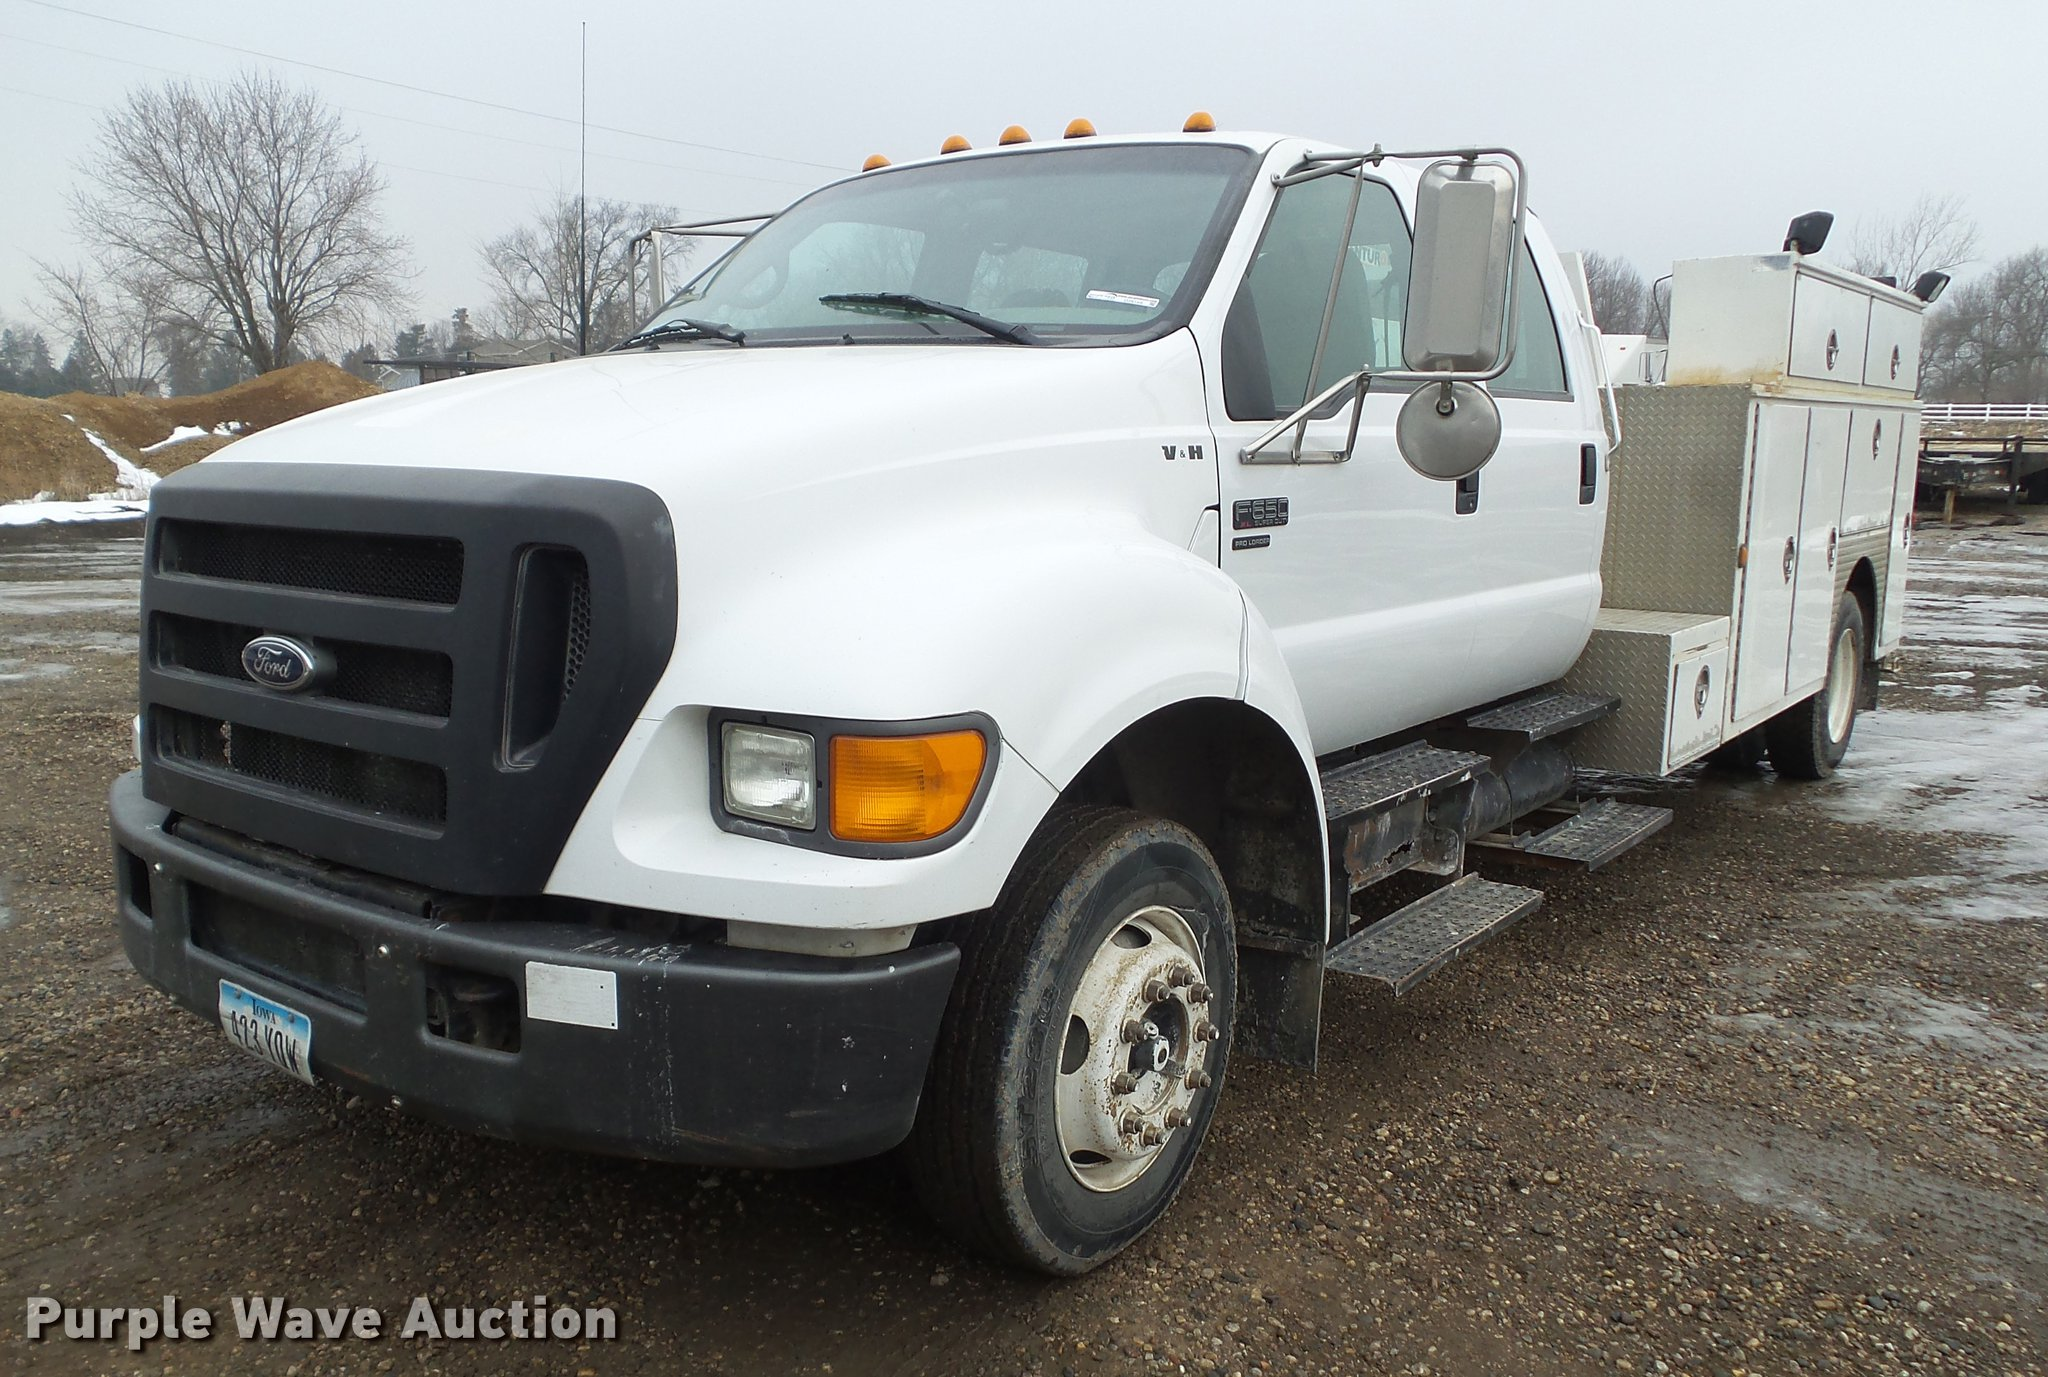 2005 Ford F650 Super Duty service truck with crane